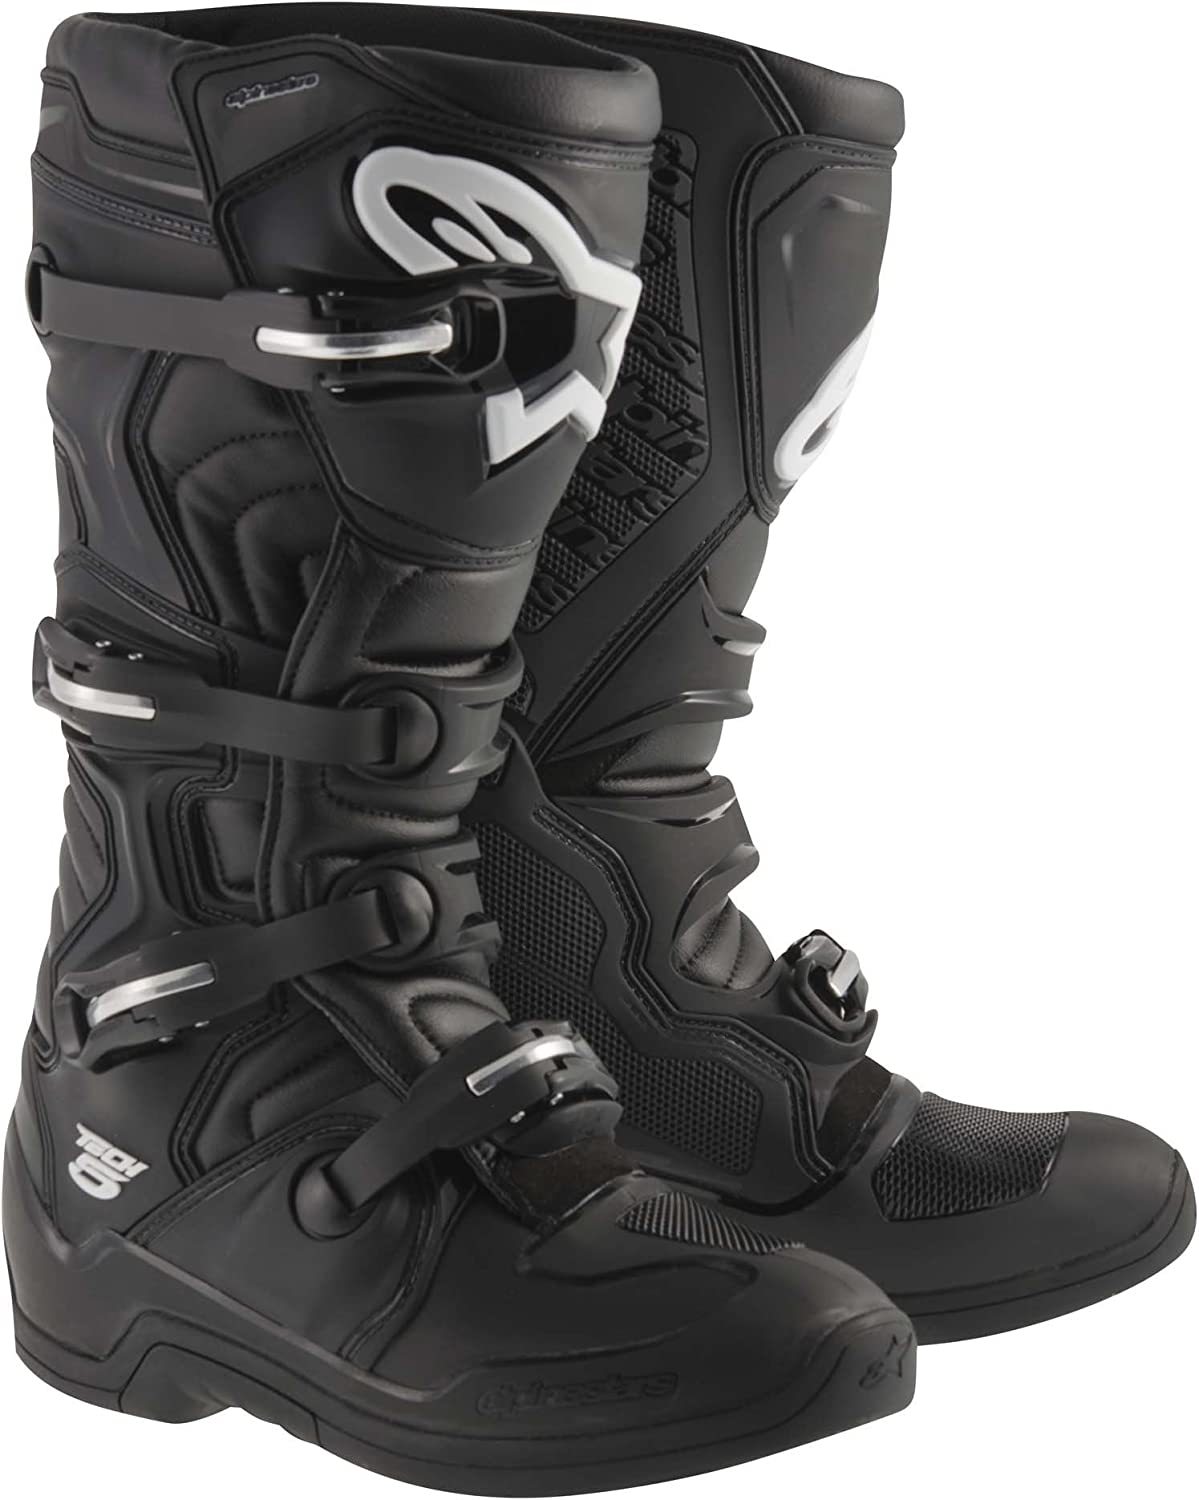 White 3-pk Alpinestars STRAP Kit w// Aluminum Bridge for Tech 10 Boots 2014-UP